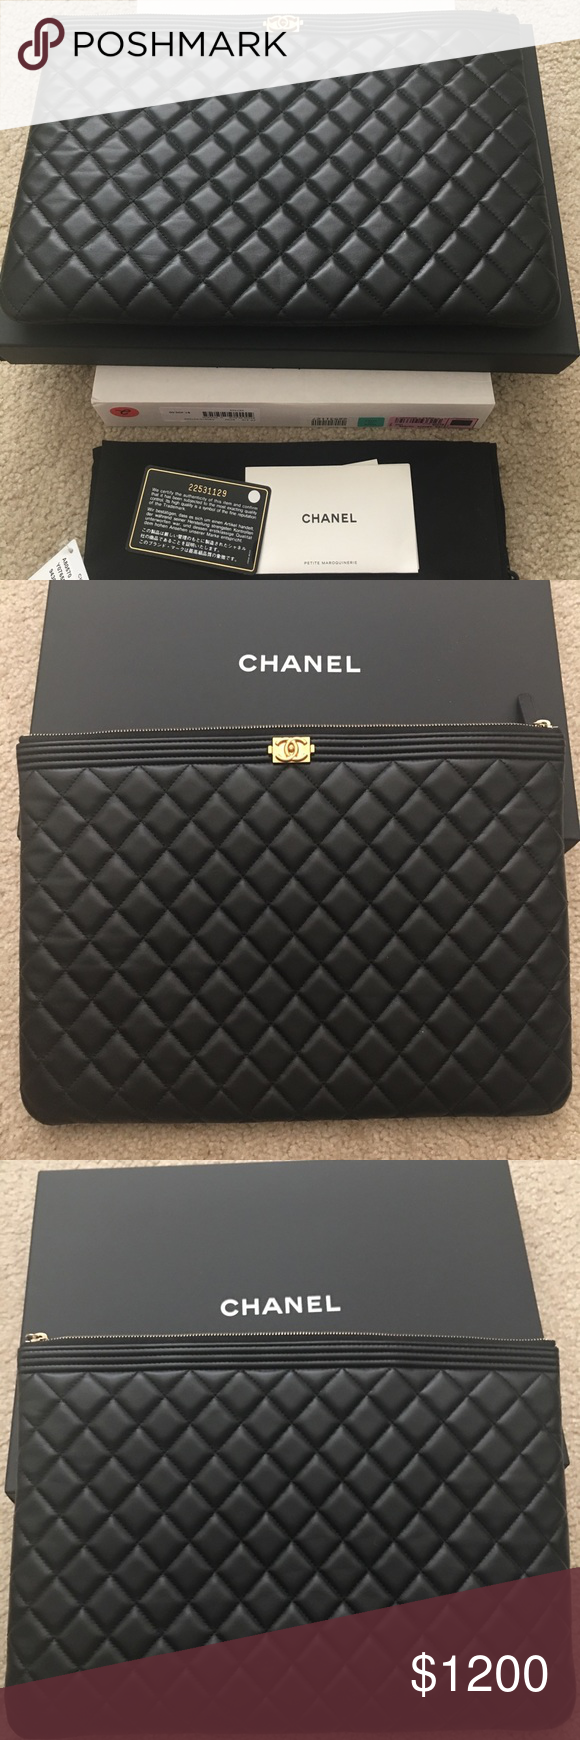 79570c10f60d Authentic Chanel Le Boy O Case/ Clutch Large Authentic Chanel Le Boy O Case  Black Lambskin with Gold Hardware. It shows some Normal wear but it's still  in ...